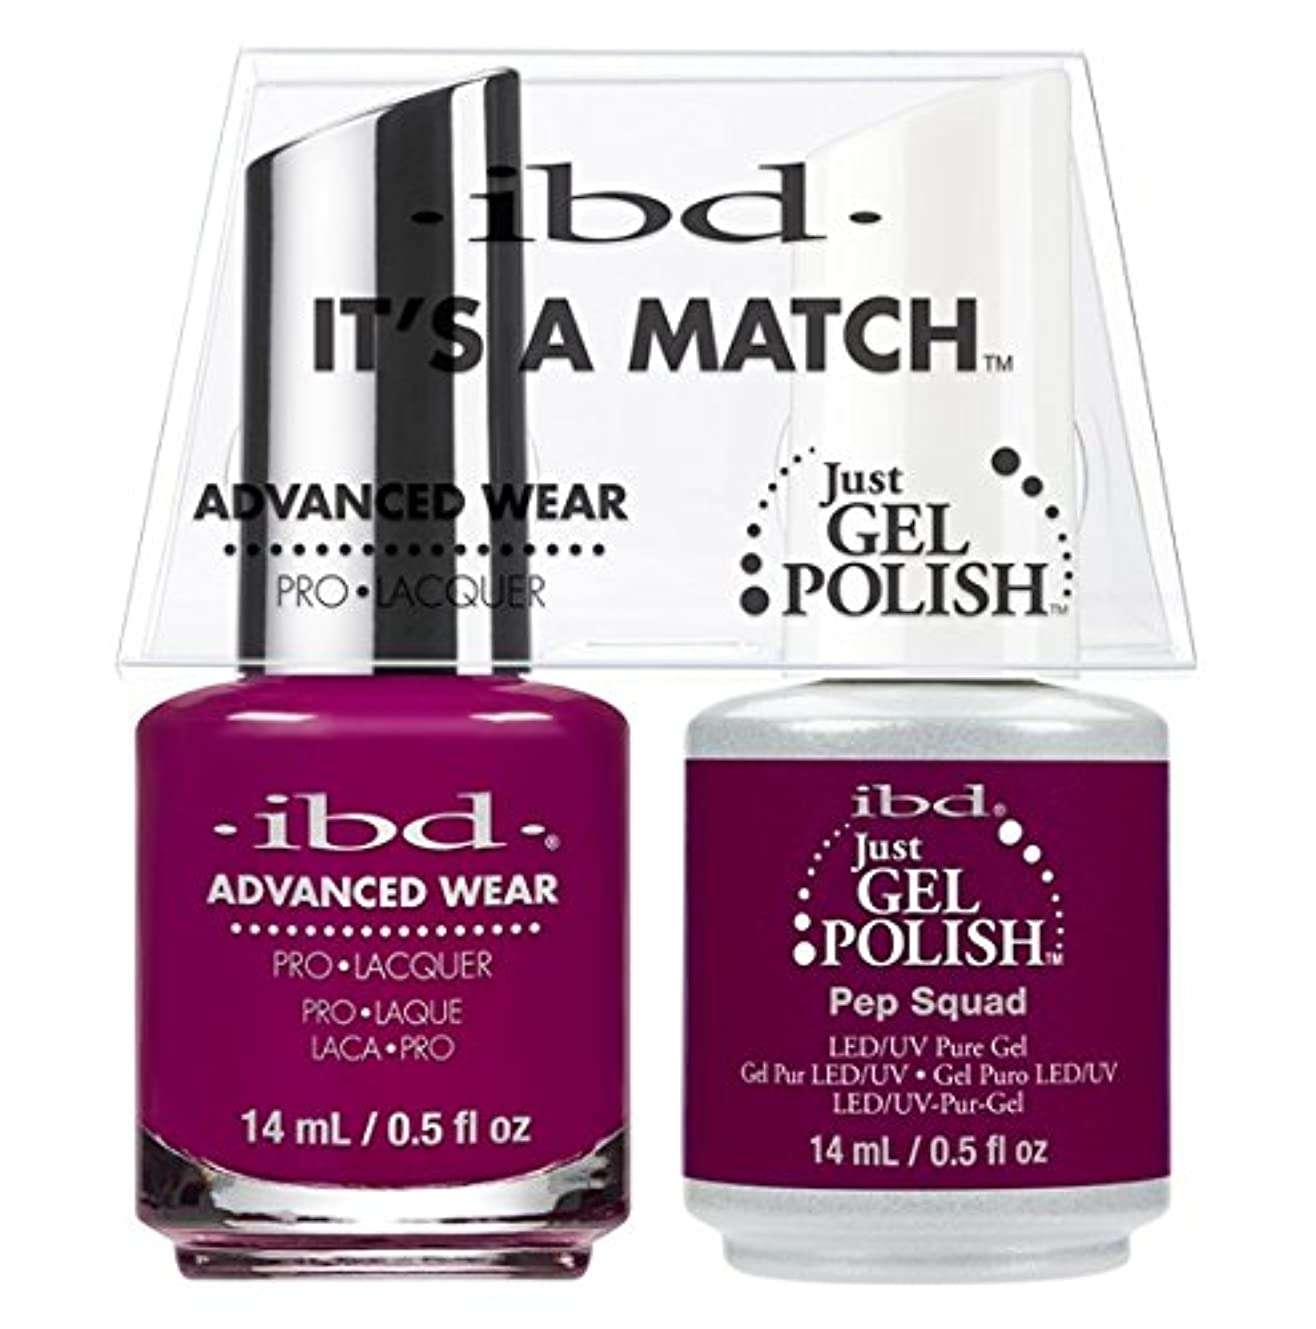 ibd - It's A Match -Duo Pack- Pep Squad - 14 mL / 0.5 oz Each